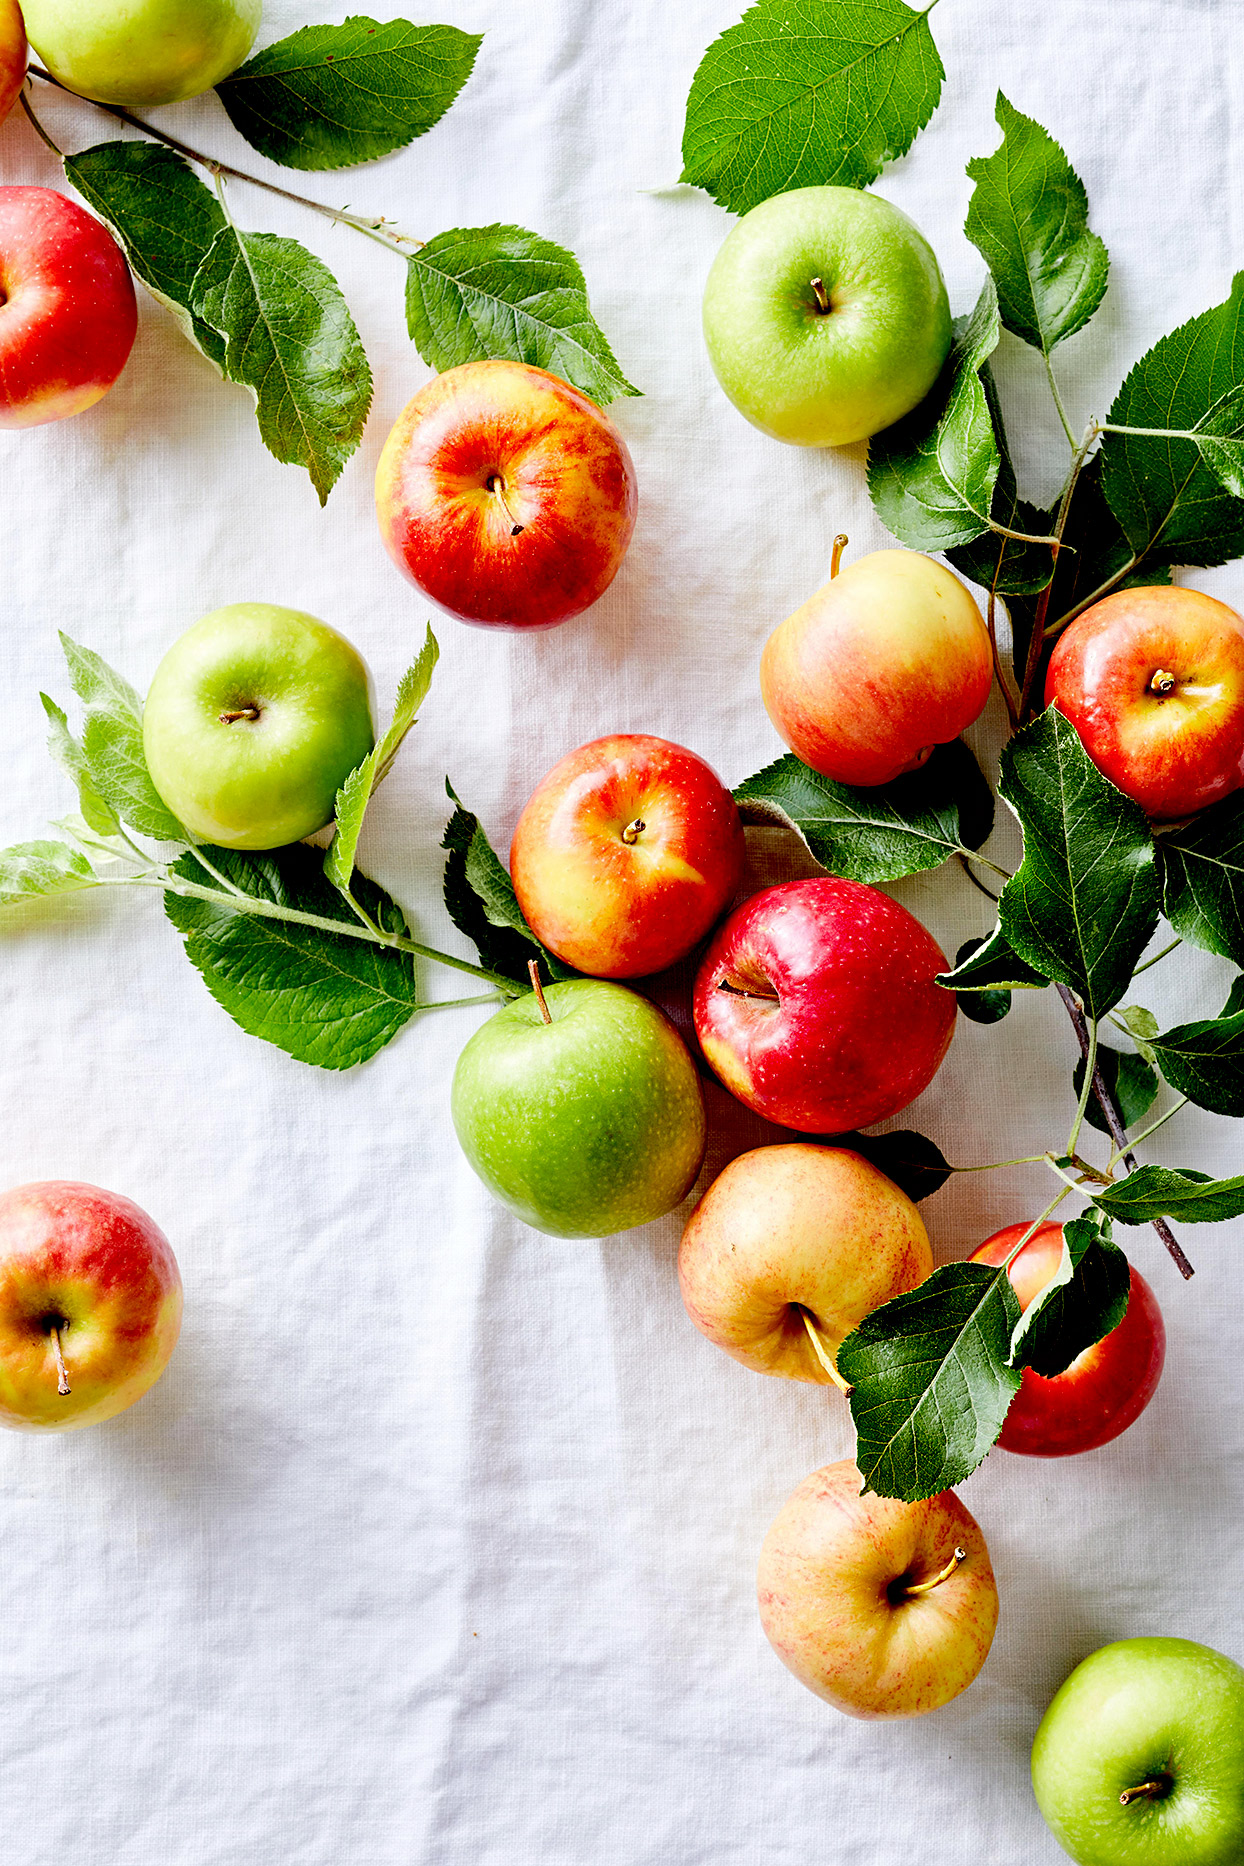 Red and green apples and leaves